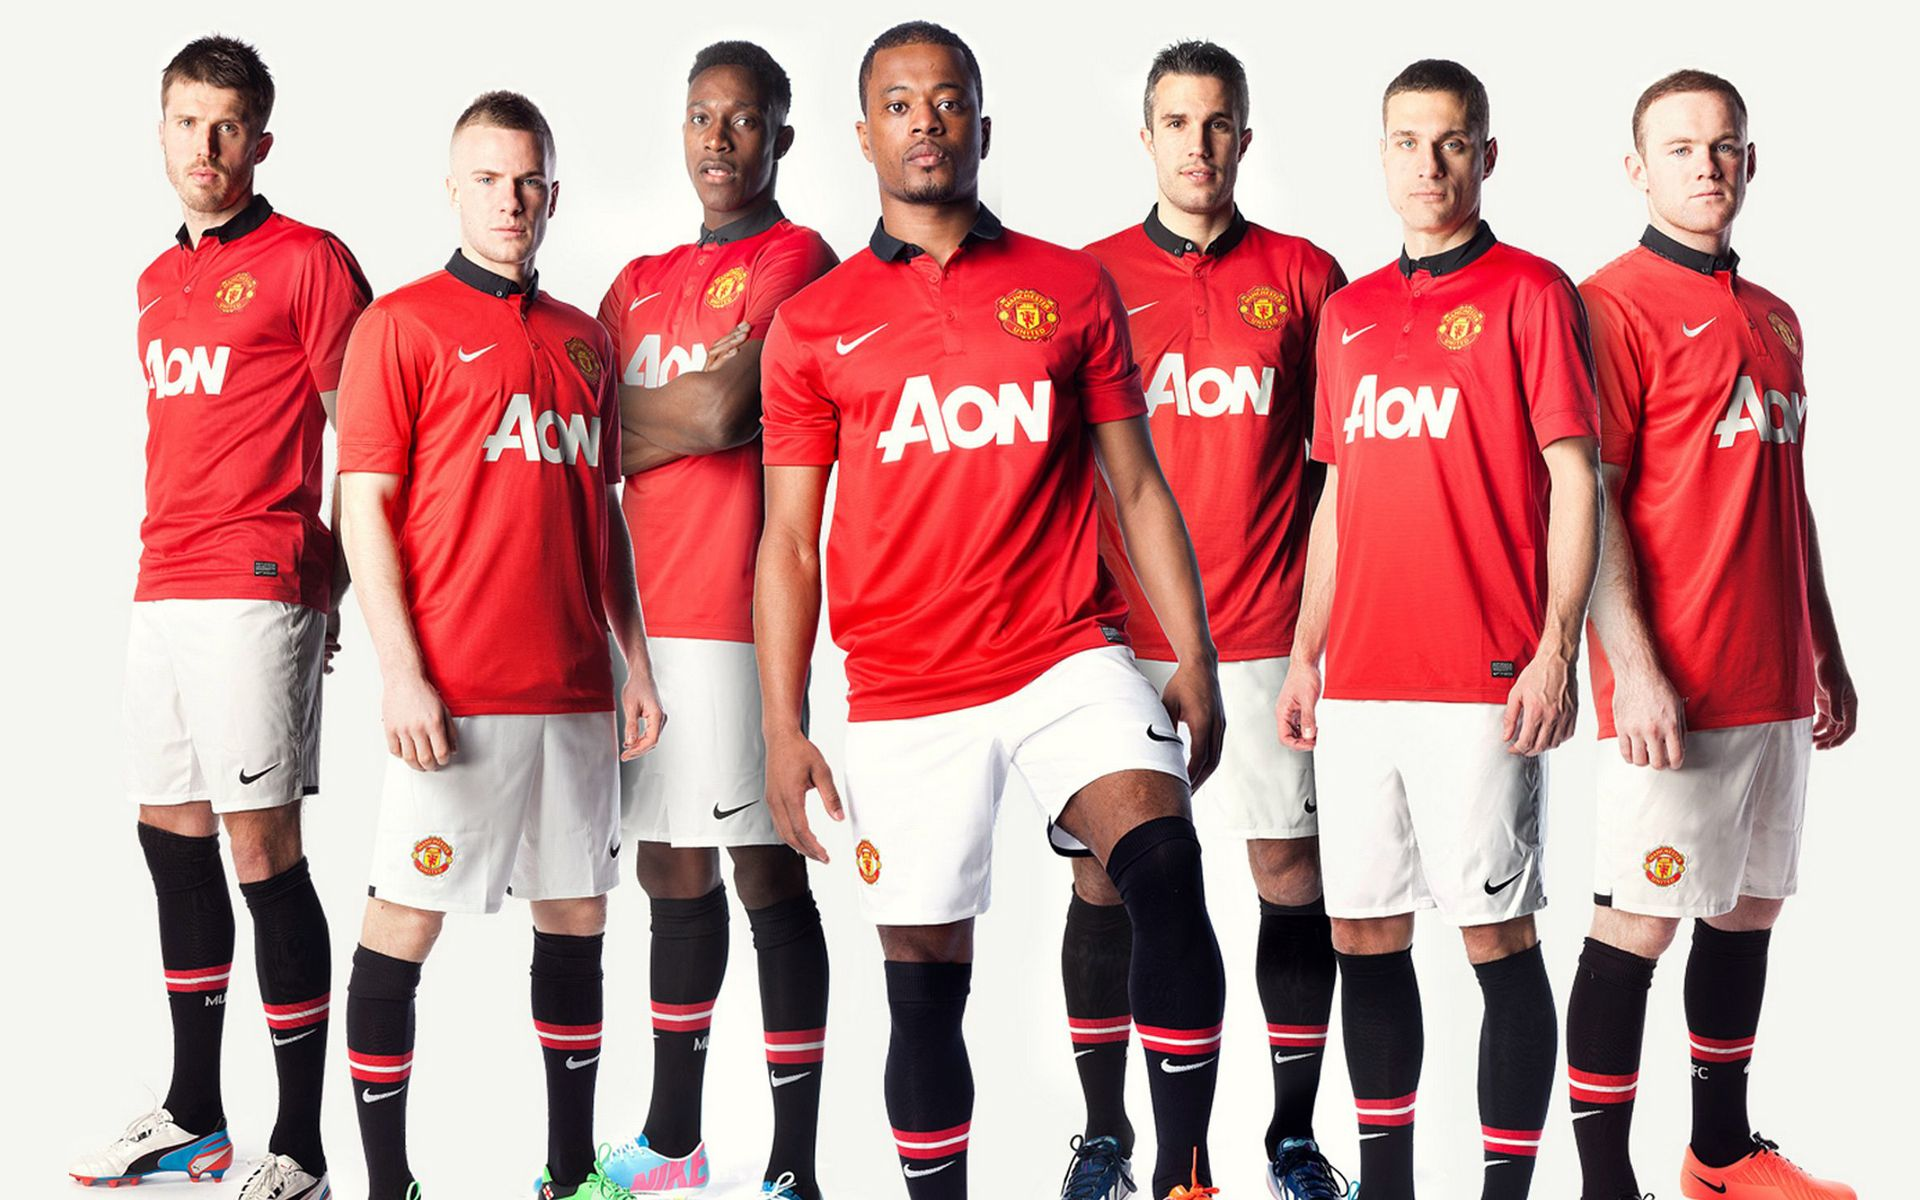 Get Awesome Manchester United Wallpapers Hd Wallpaper Manchester United Jersey 2013-2014 Exclusive HD Wallpapers